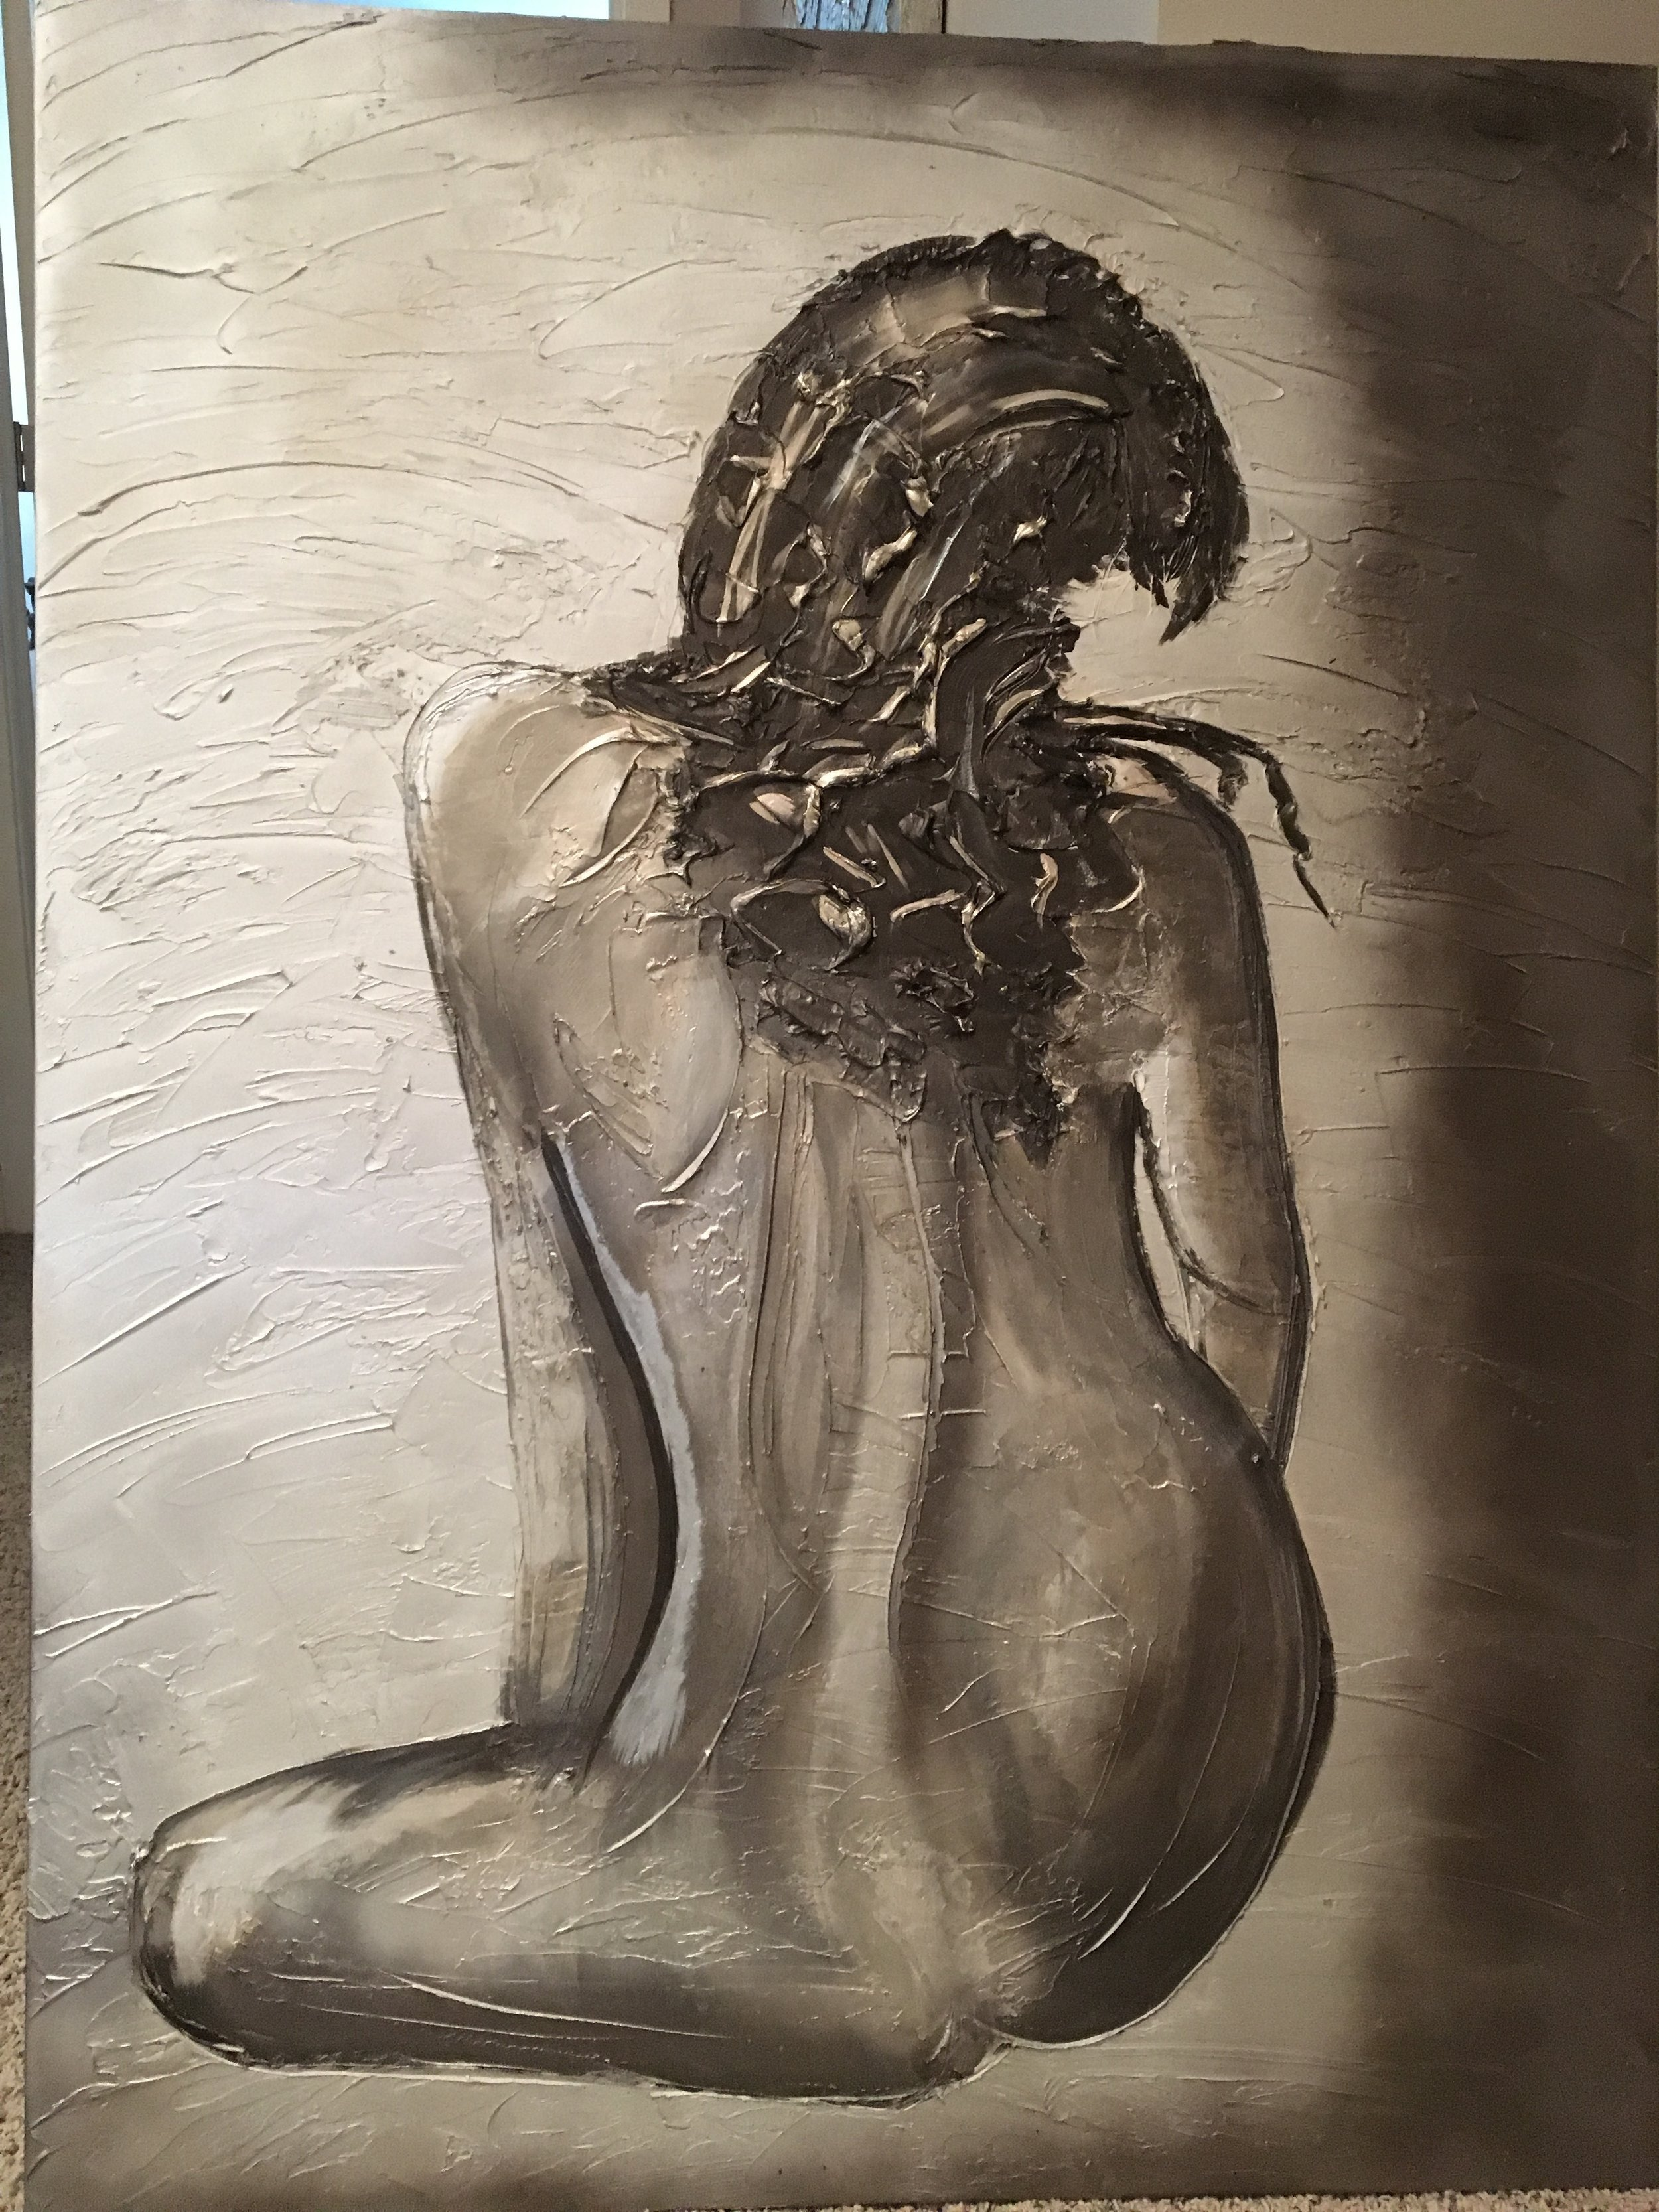 'Silhoutte' is sophisticated. Want it personalized to you or someone you know? Send me a photo! Shown in a 36x48